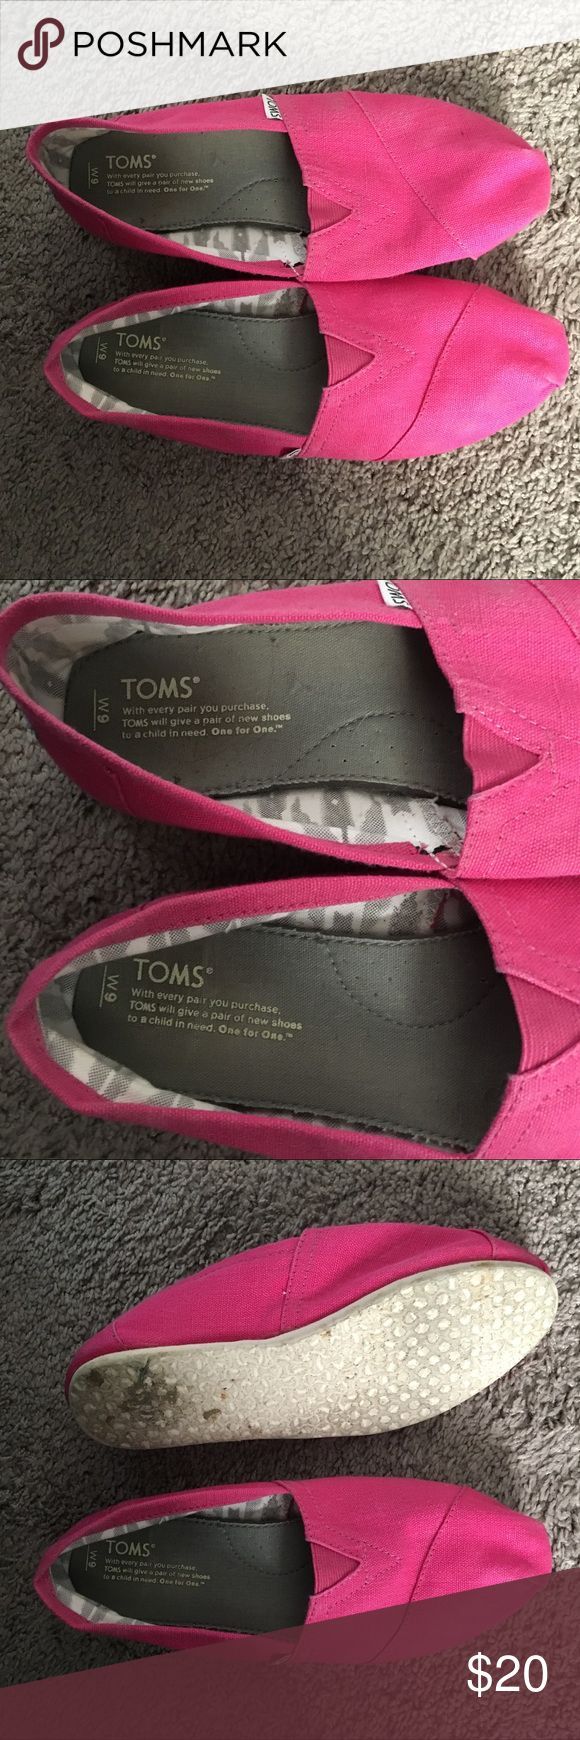 Toms women flat pink size 9 shoes Worn twice. Pink toms shoe size 9 Toms Shoes Flats & Loafers